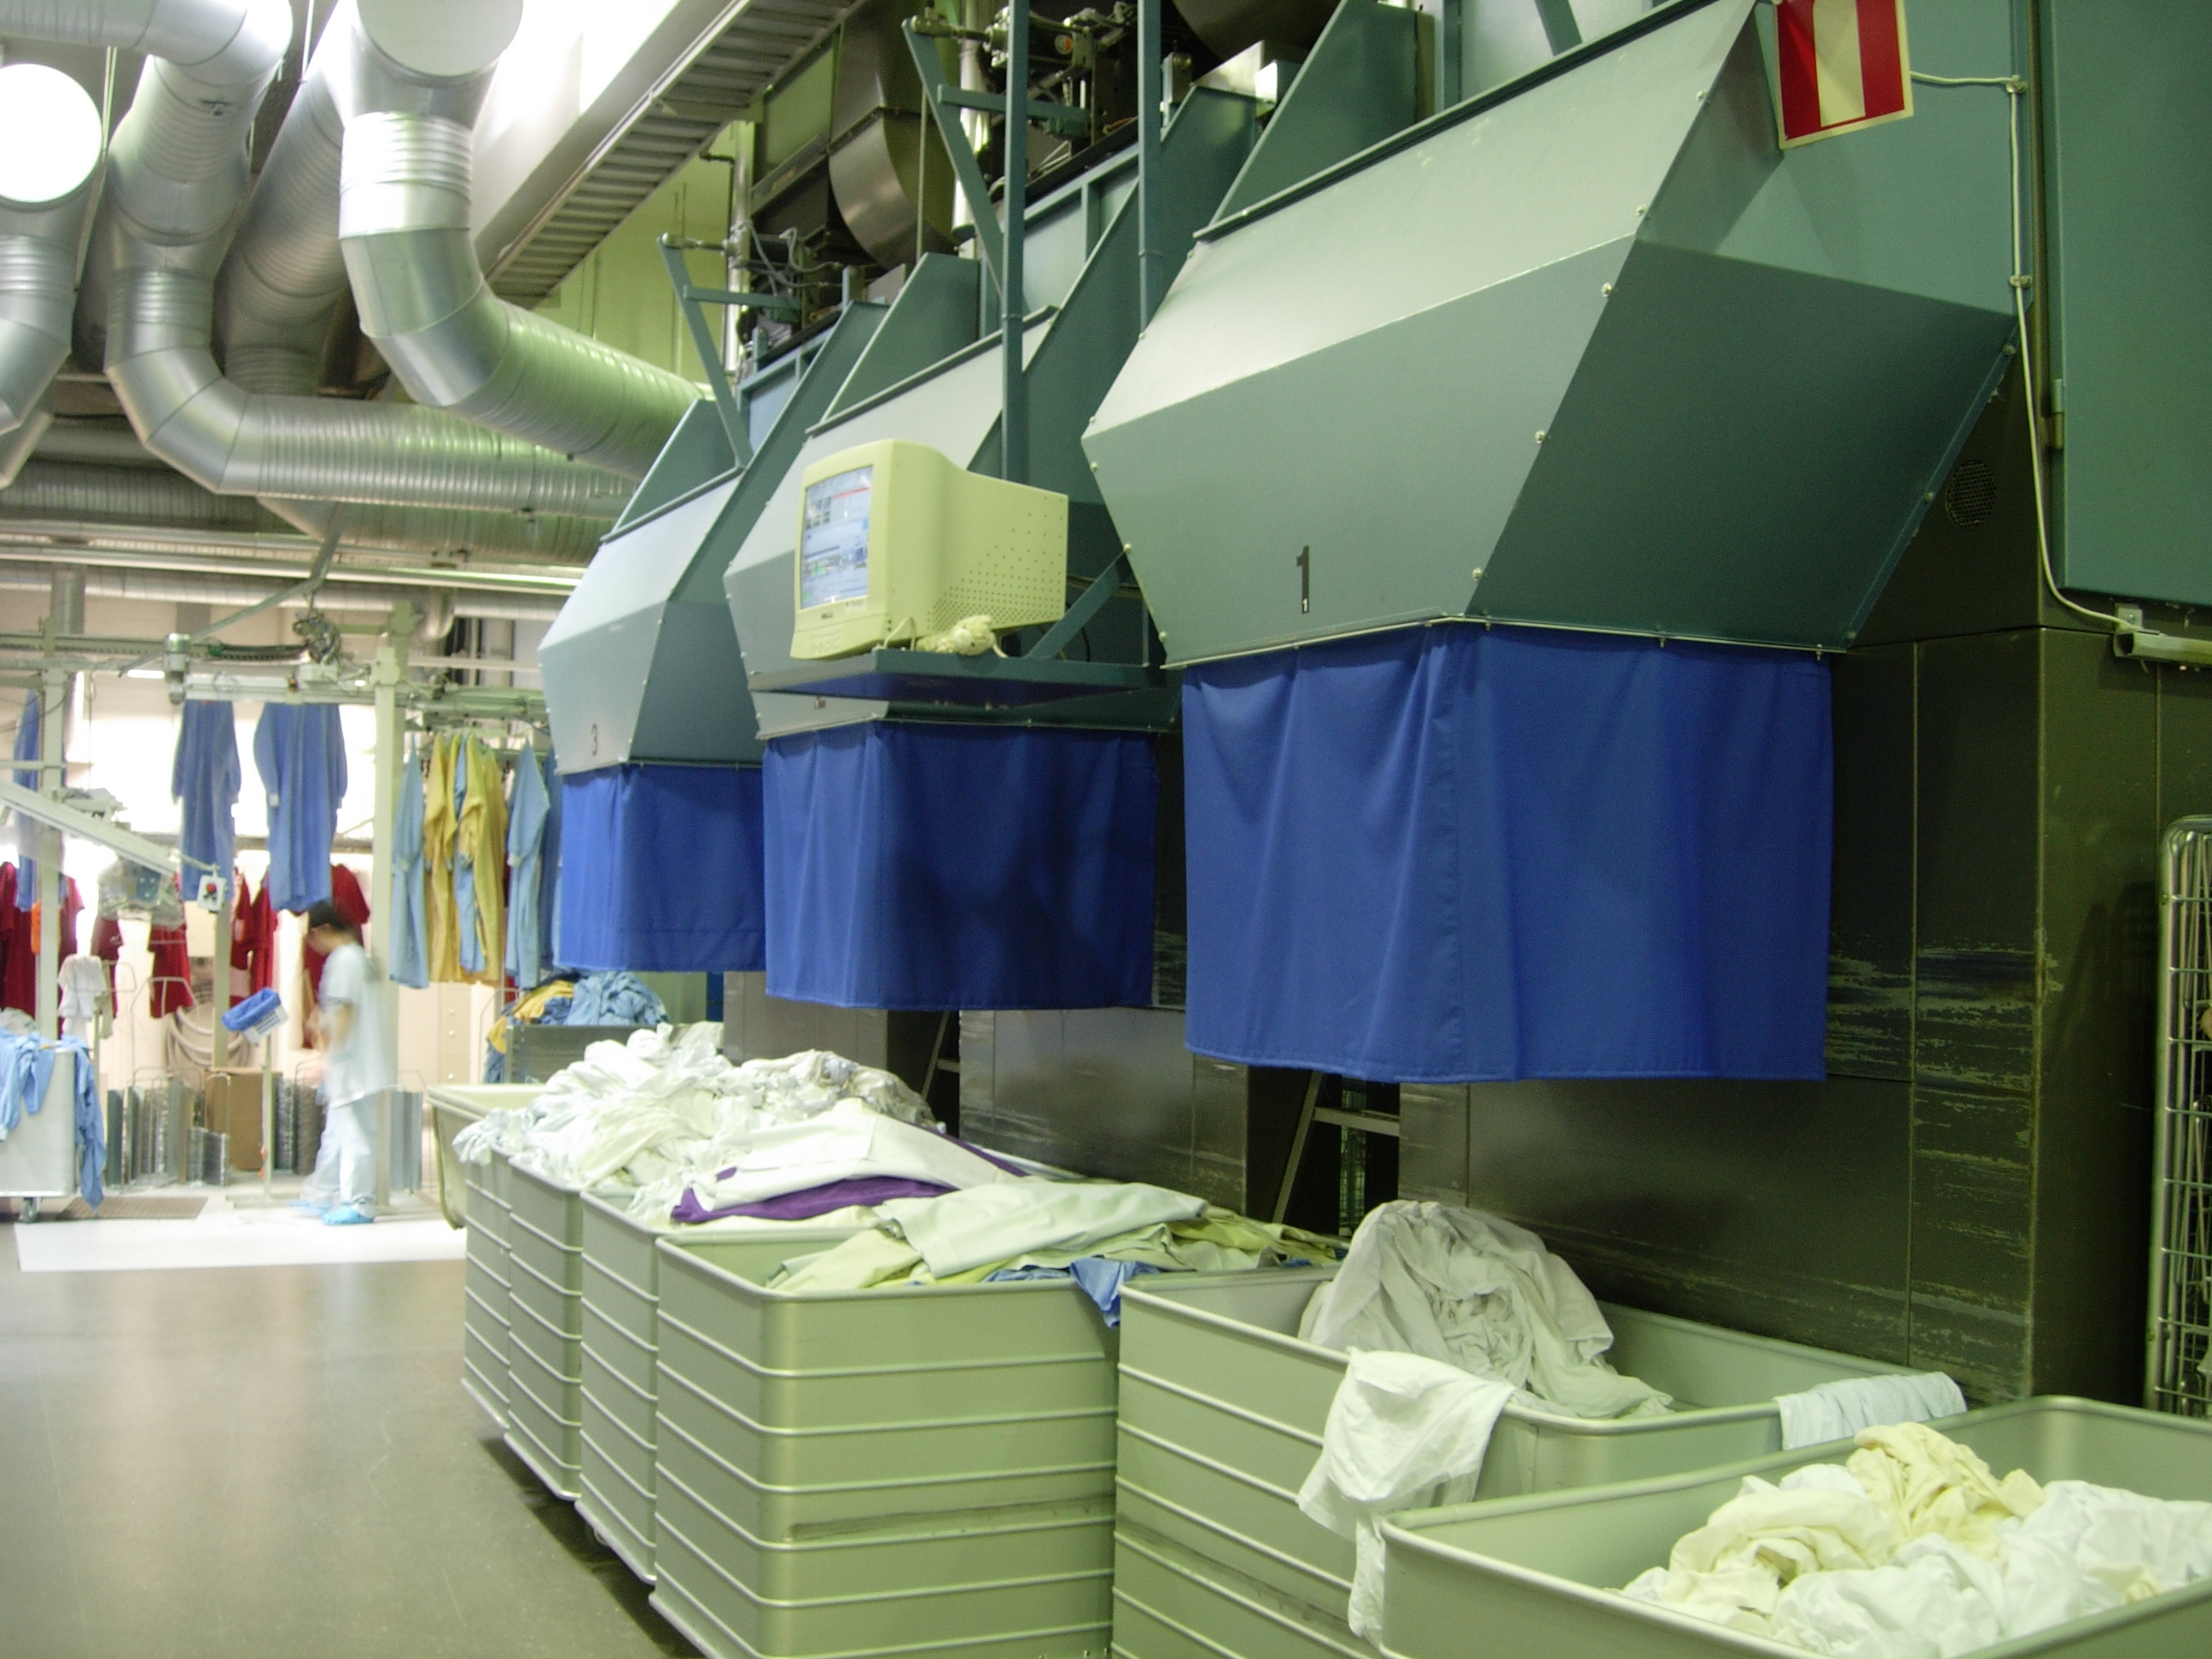 File:Industrial laundry linen press, exit.jpg - Wikimedia ...